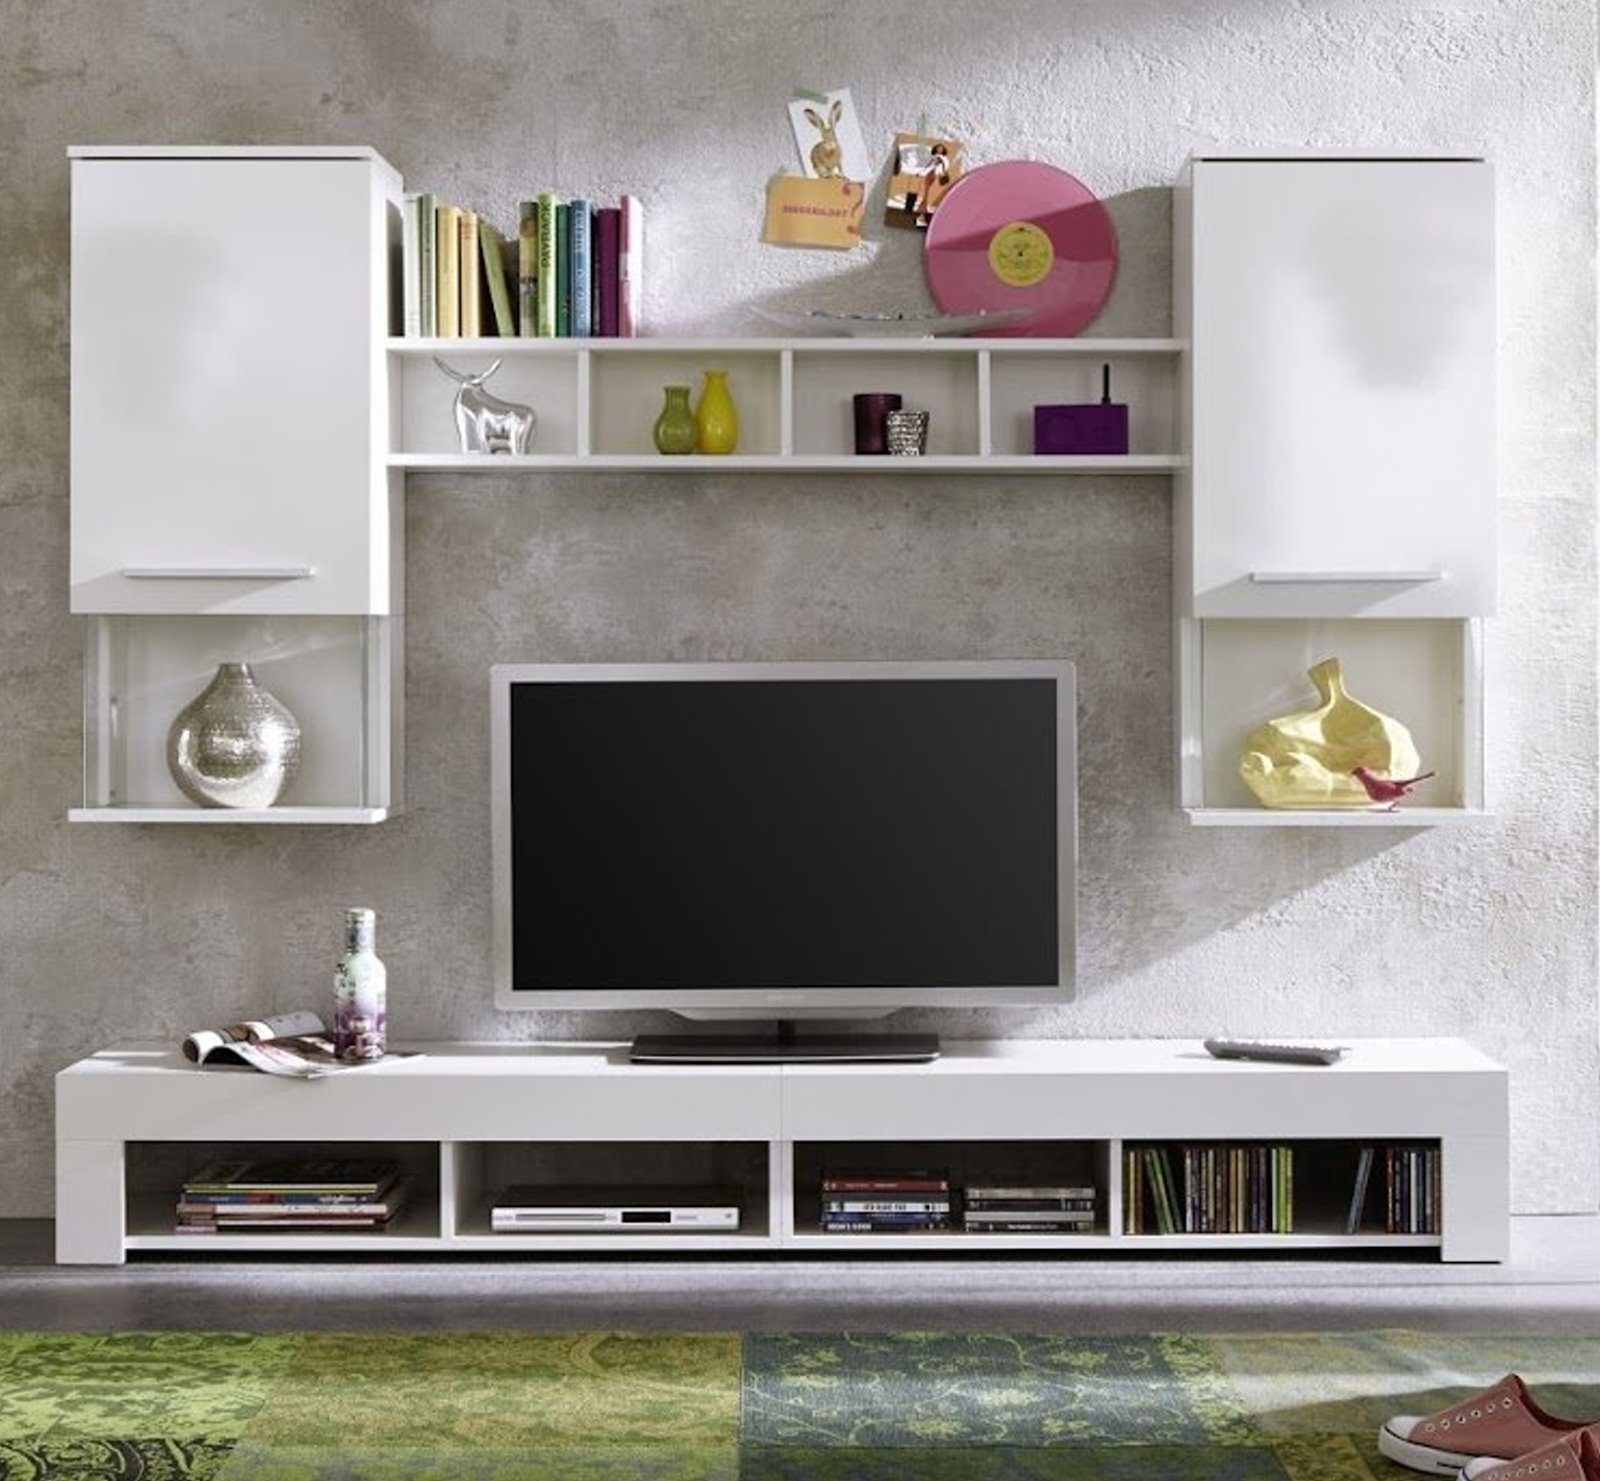 wohnwand anbauwand wohnzimmer tv schrank schrankwand wohnwand hochglanz wei ebay. Black Bedroom Furniture Sets. Home Design Ideas